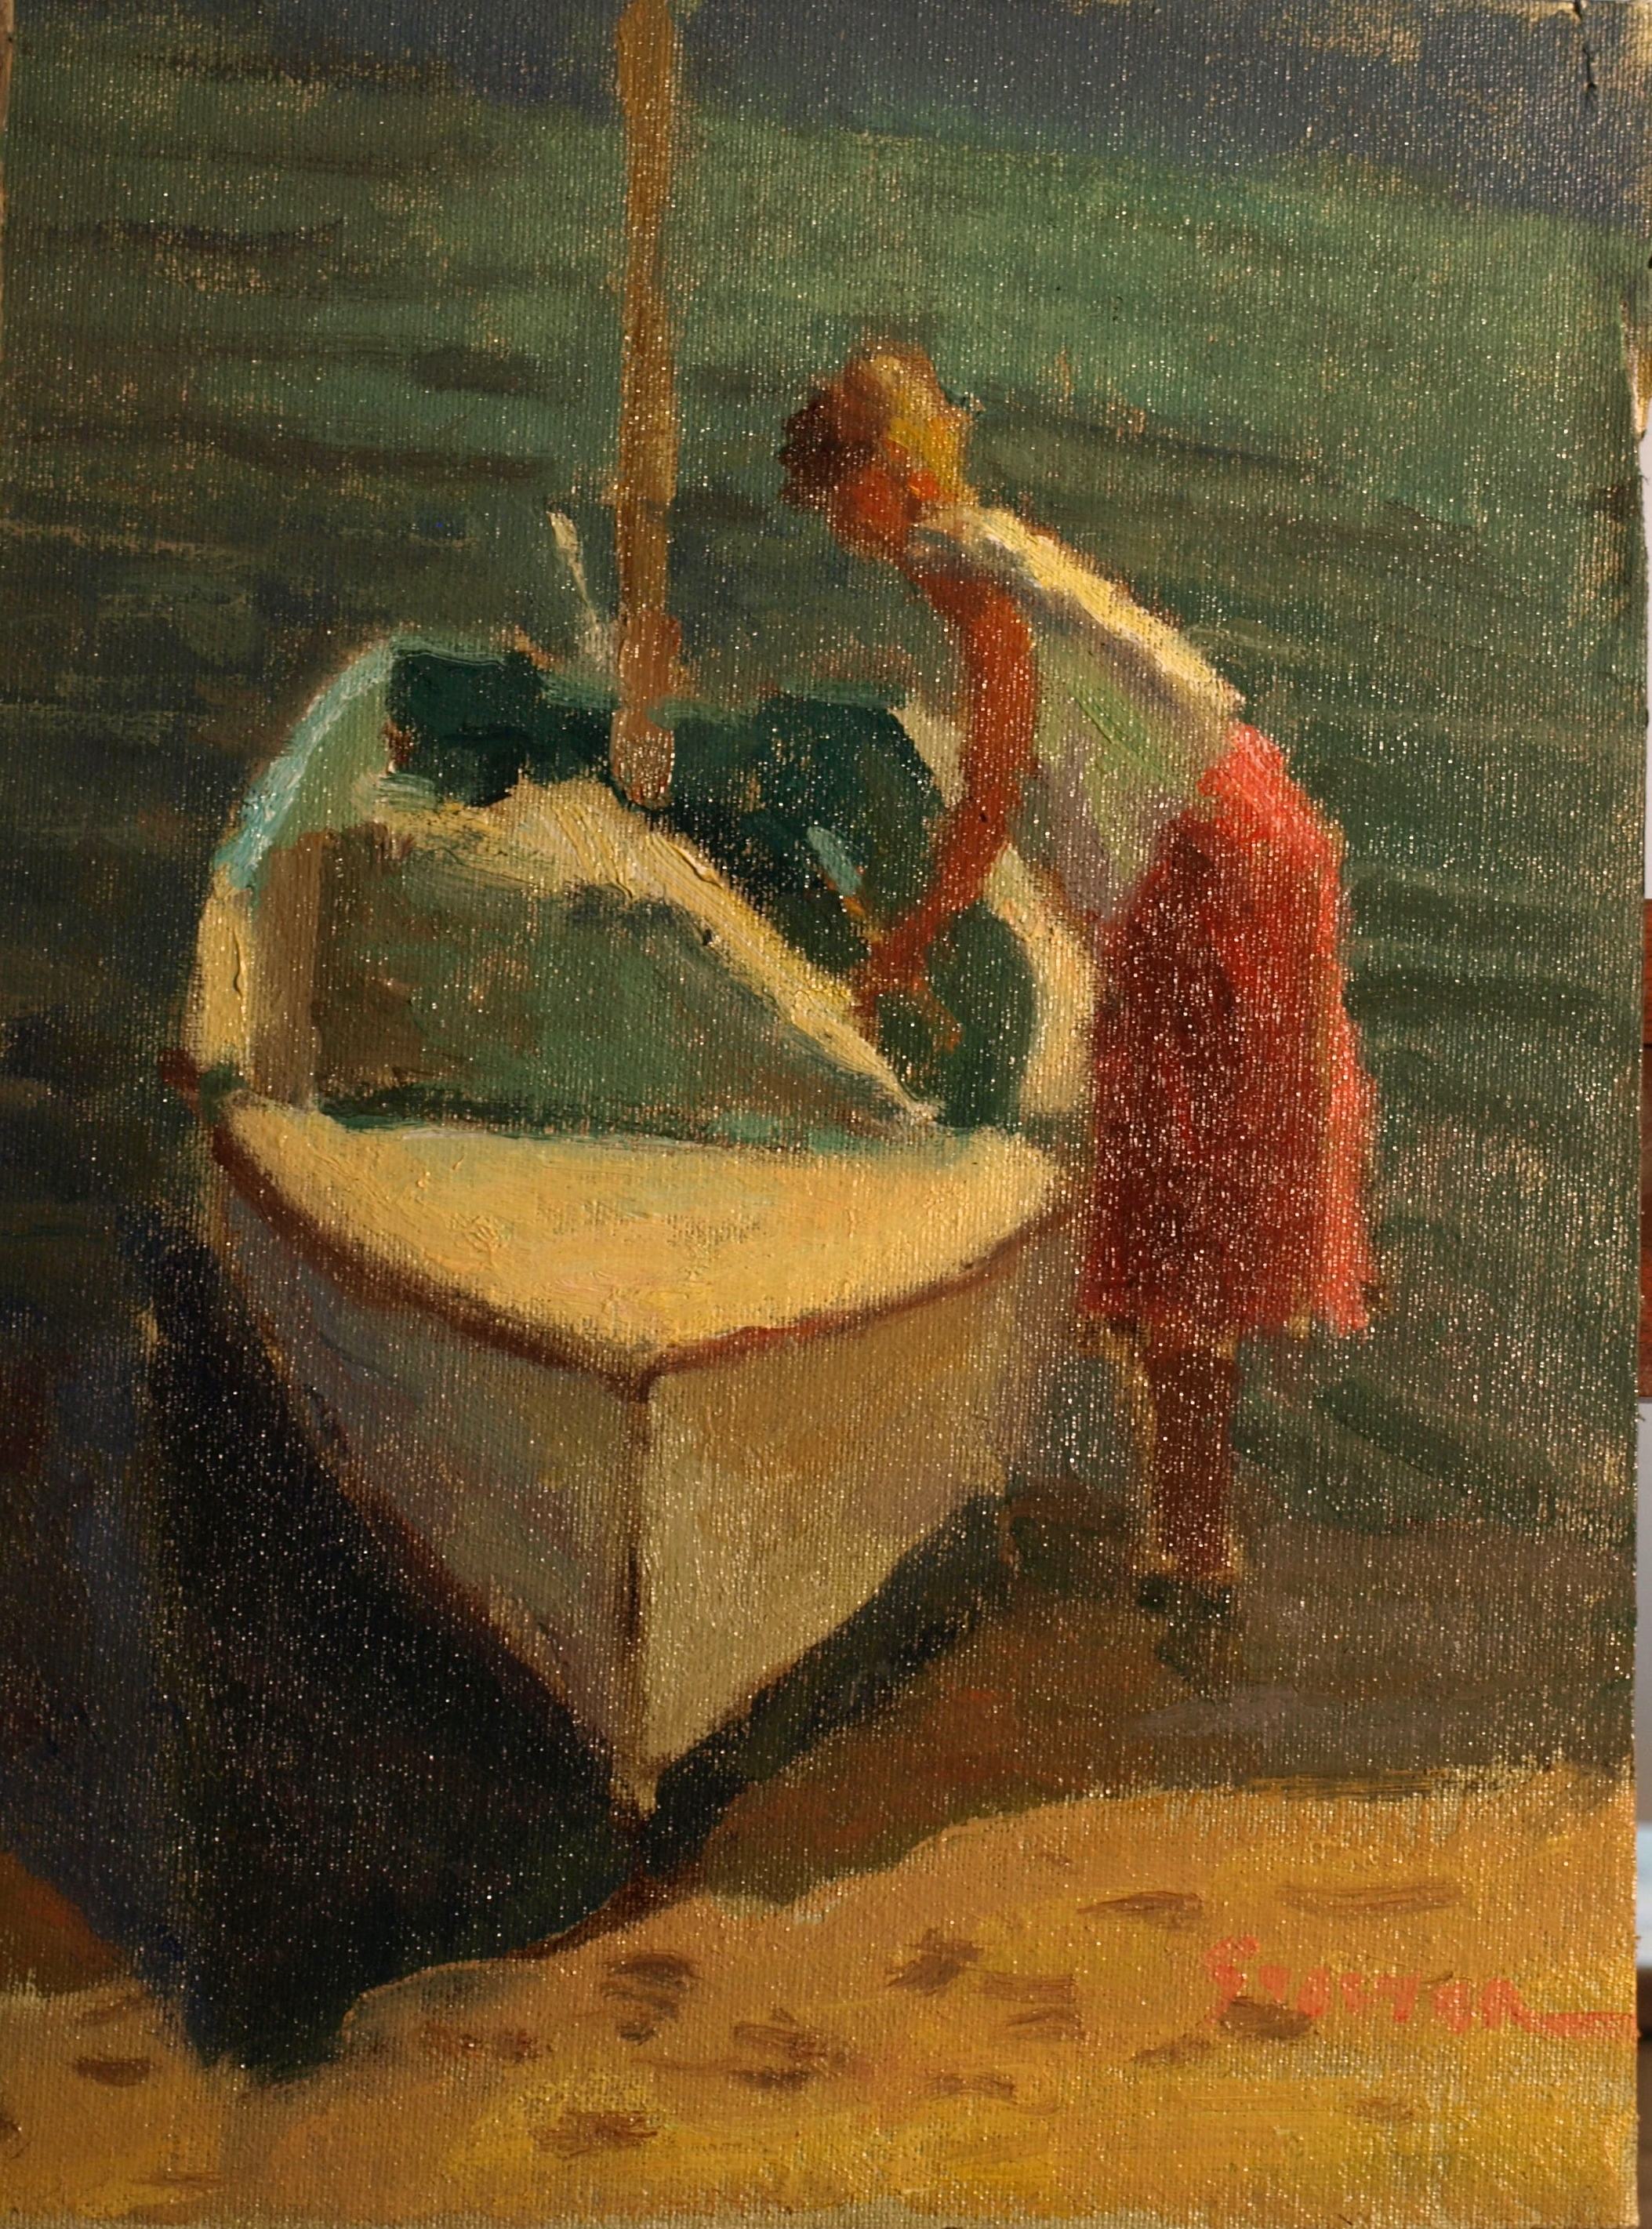 Casting Off, Oil on Canvas on Panel, 12 x 9 Inches, by Richard Stalter, $225